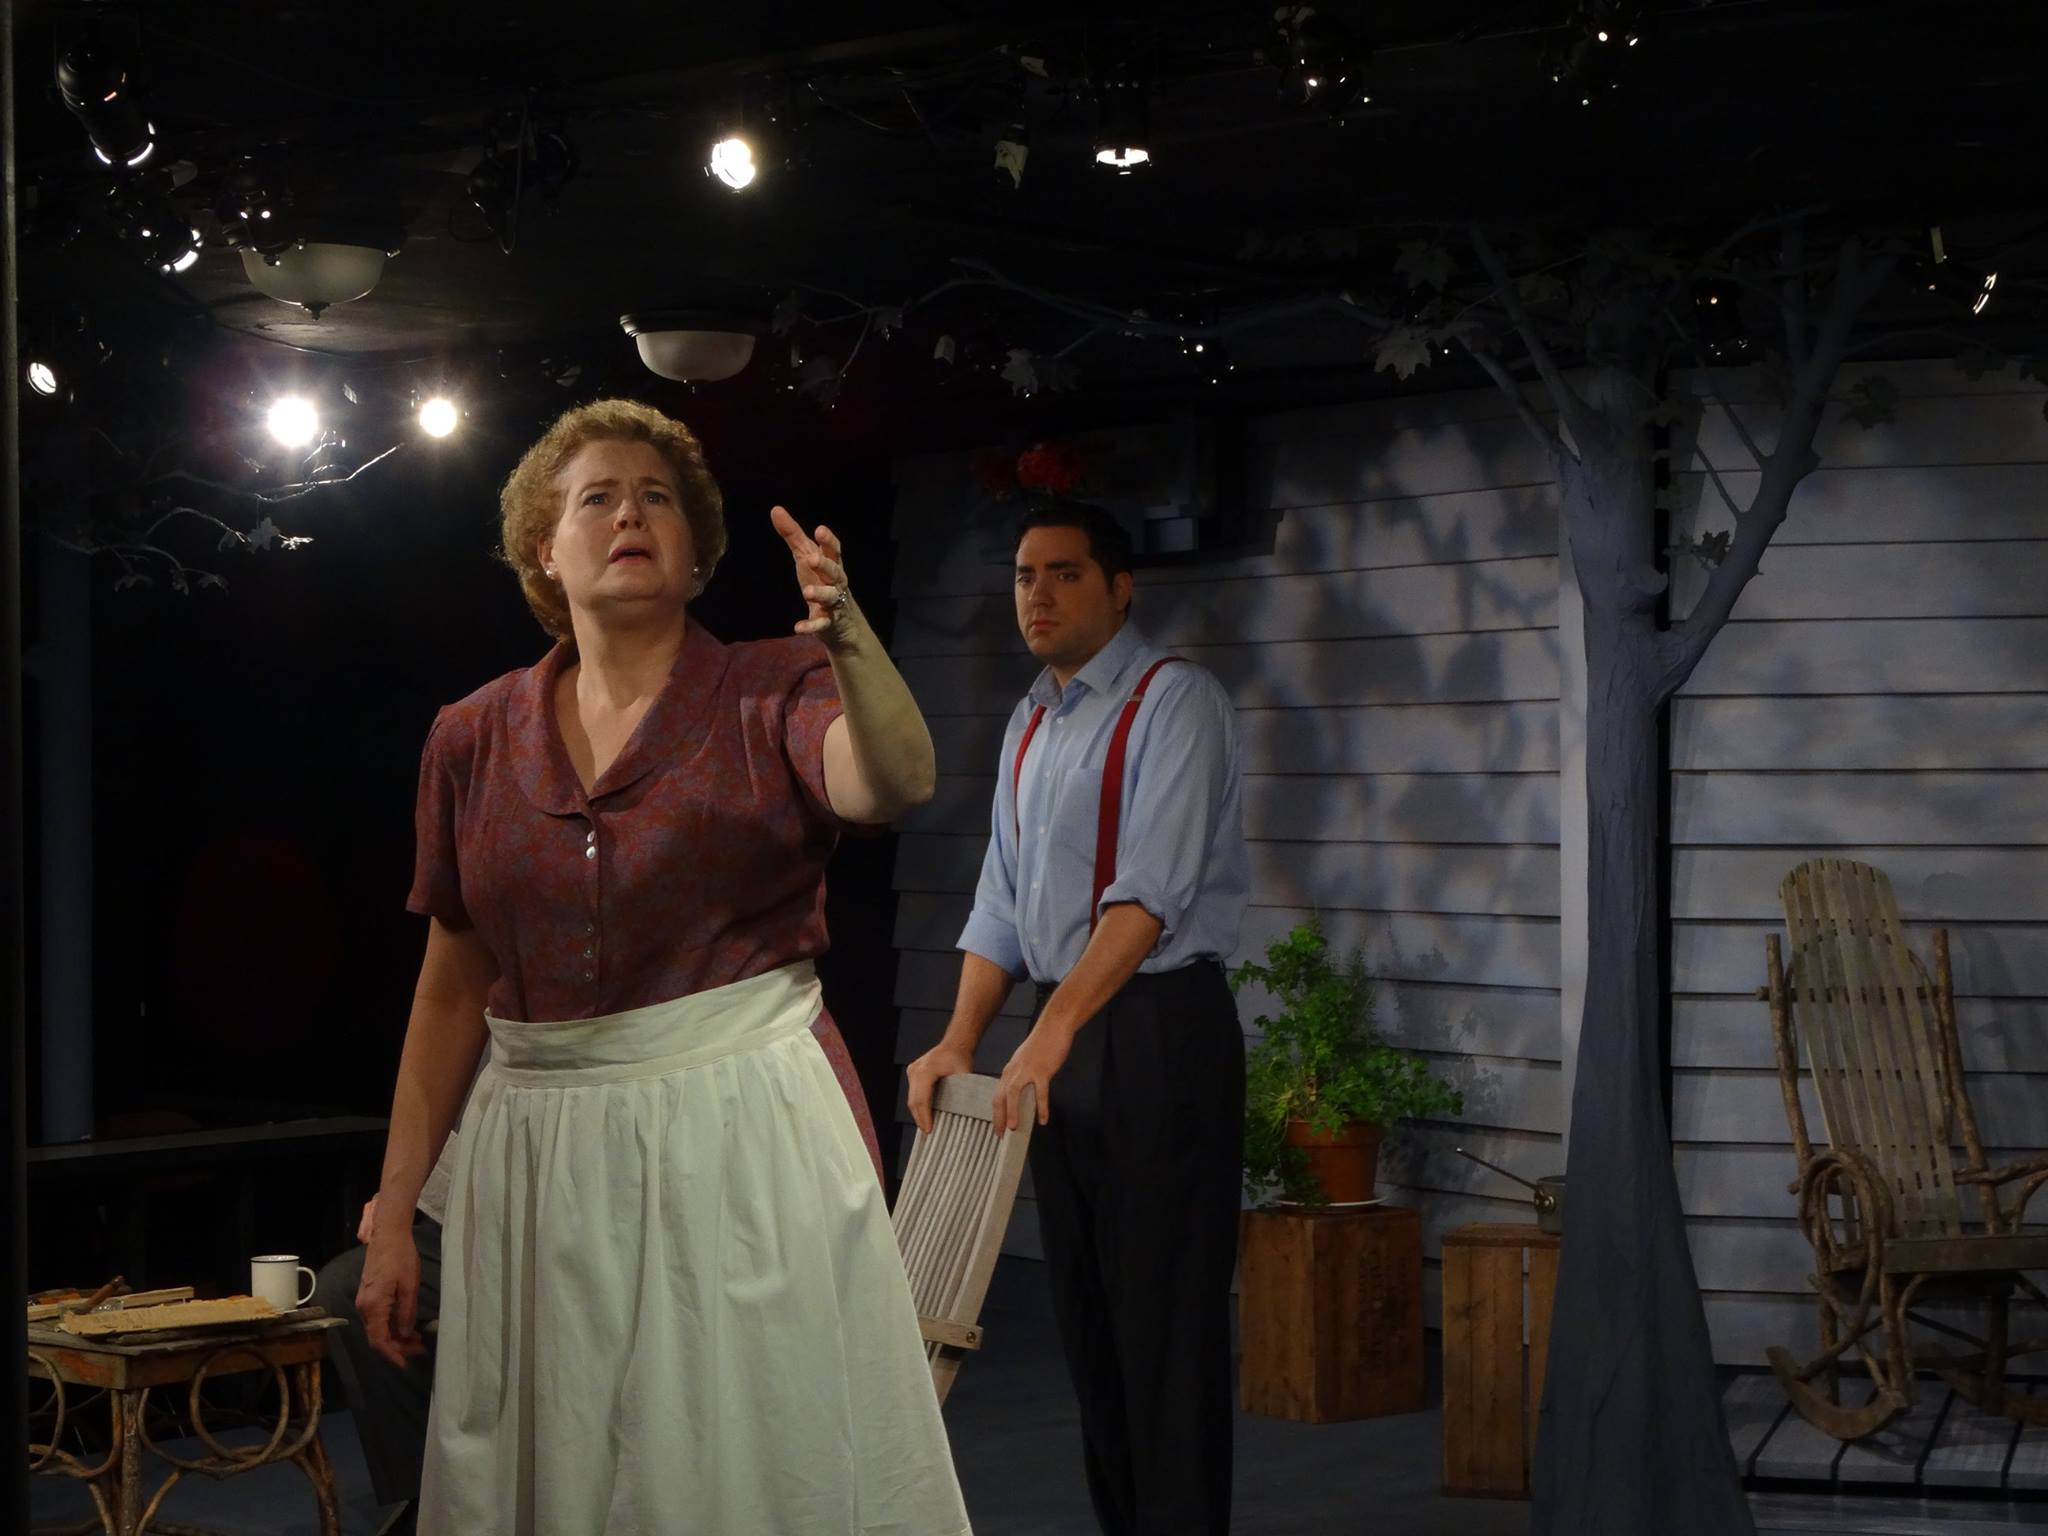 Amazing All My Sons Opens At Curtain Call, Stamford Connecticut March 6th, 2015